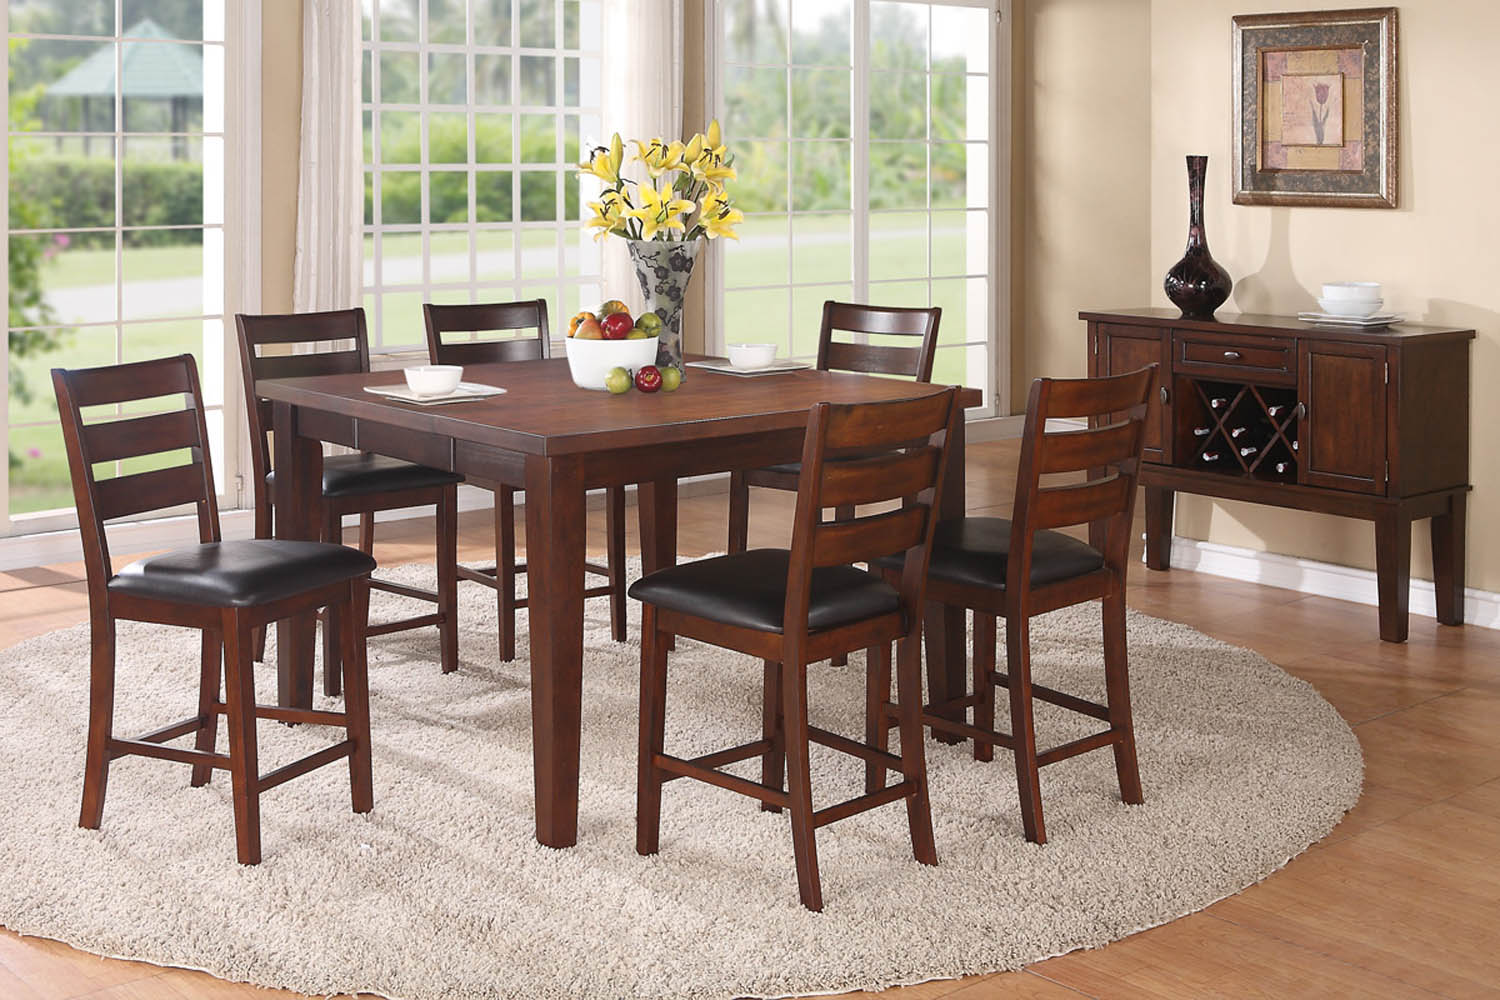 7 piece counter height dining room set for 7 piece dining room set counter height